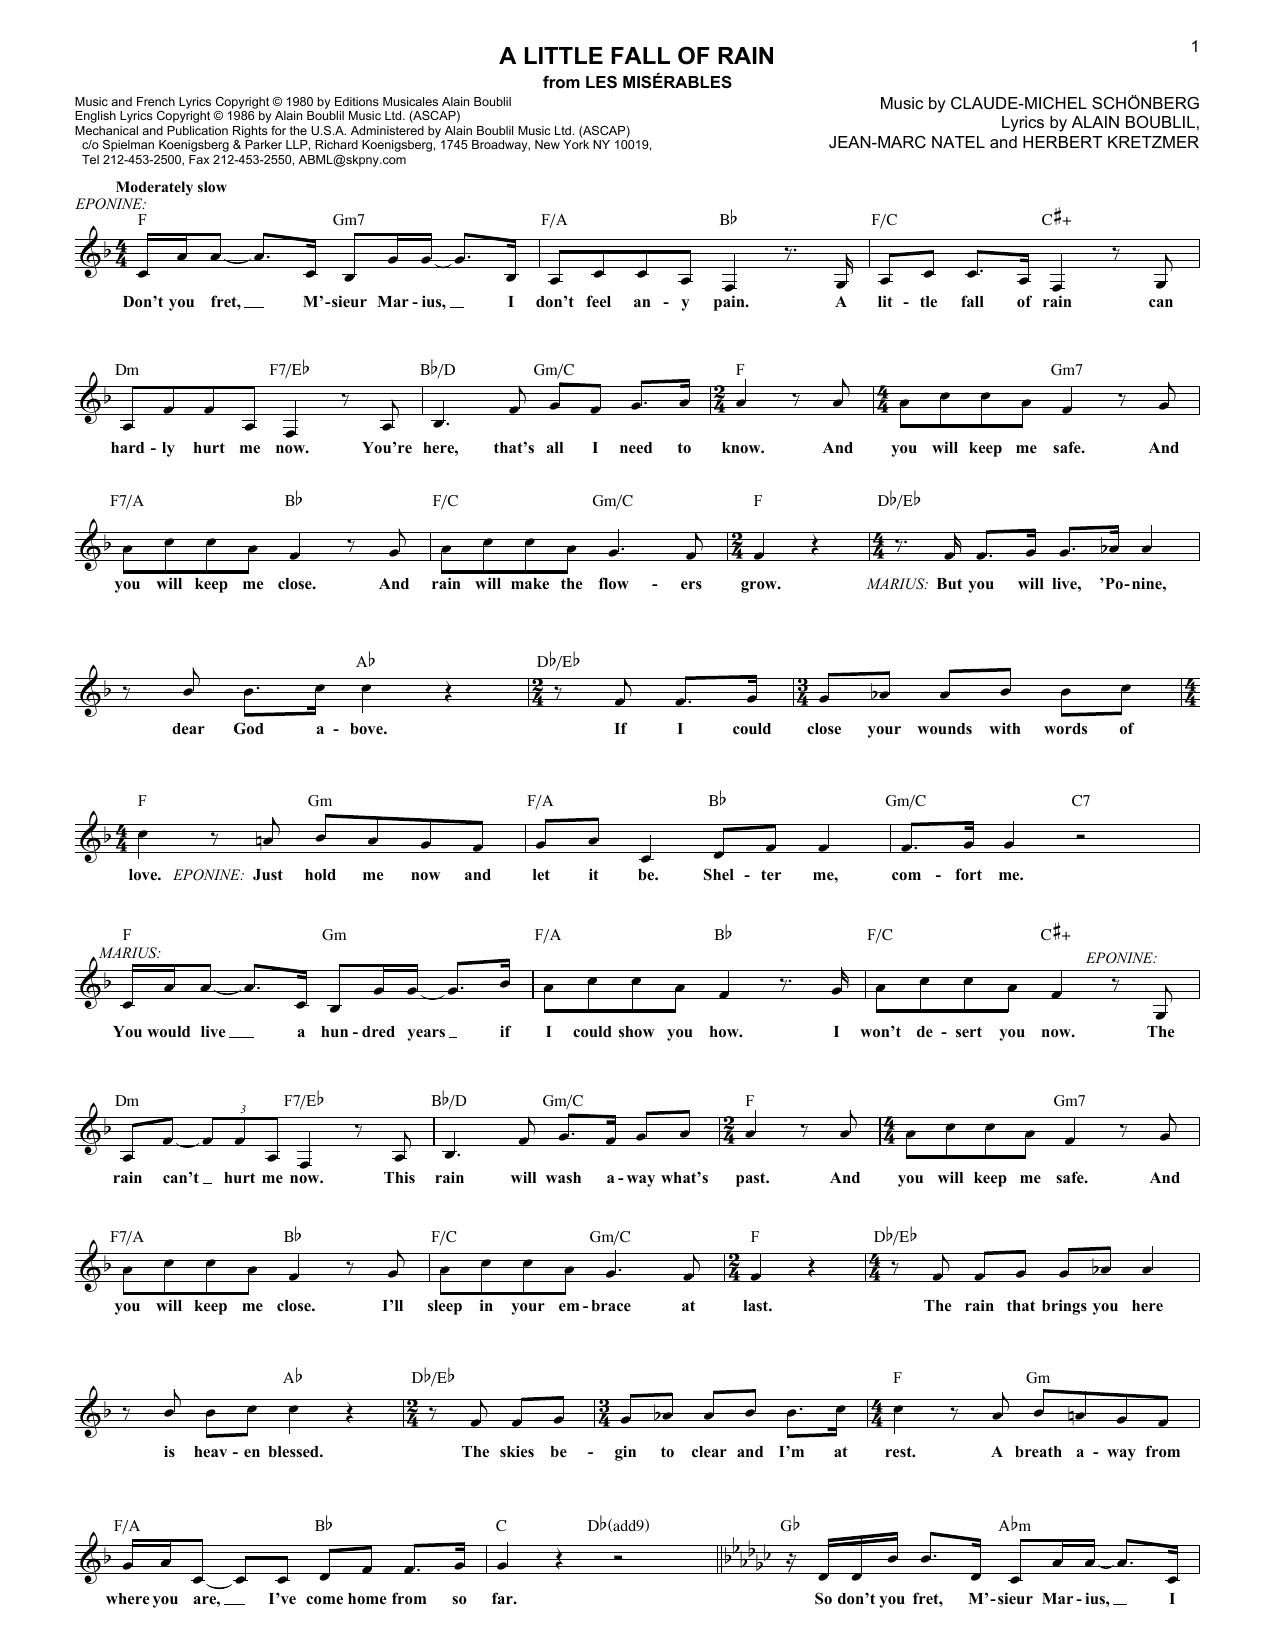 A little fall of rain sheet music direct sheet preview hexwebz Choice Image